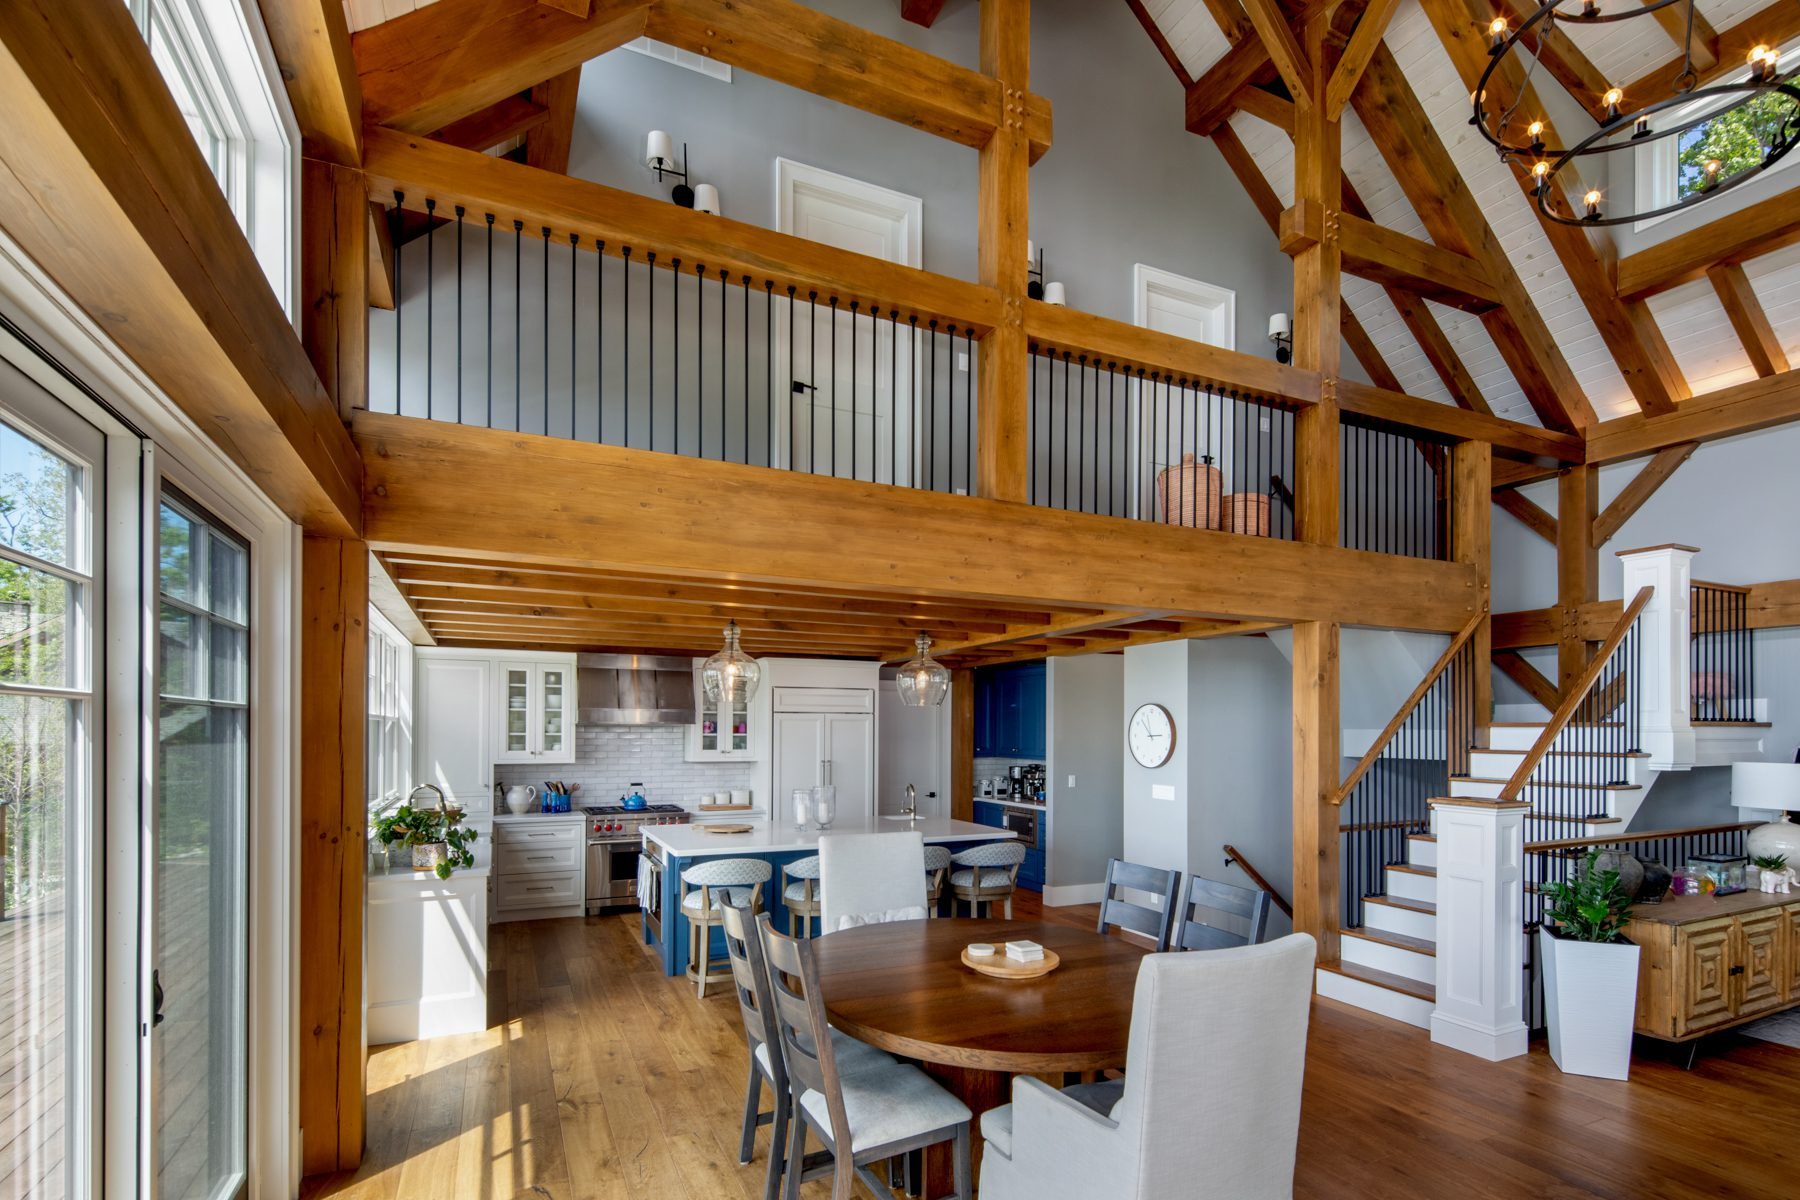 Normerica-Timber-Homes-Timber-Frame-Portfolio-Beachside-Bliss-Interior-Dining-Room-Kitchen-Loft-Cathedral-Ceilings-Open-Concept